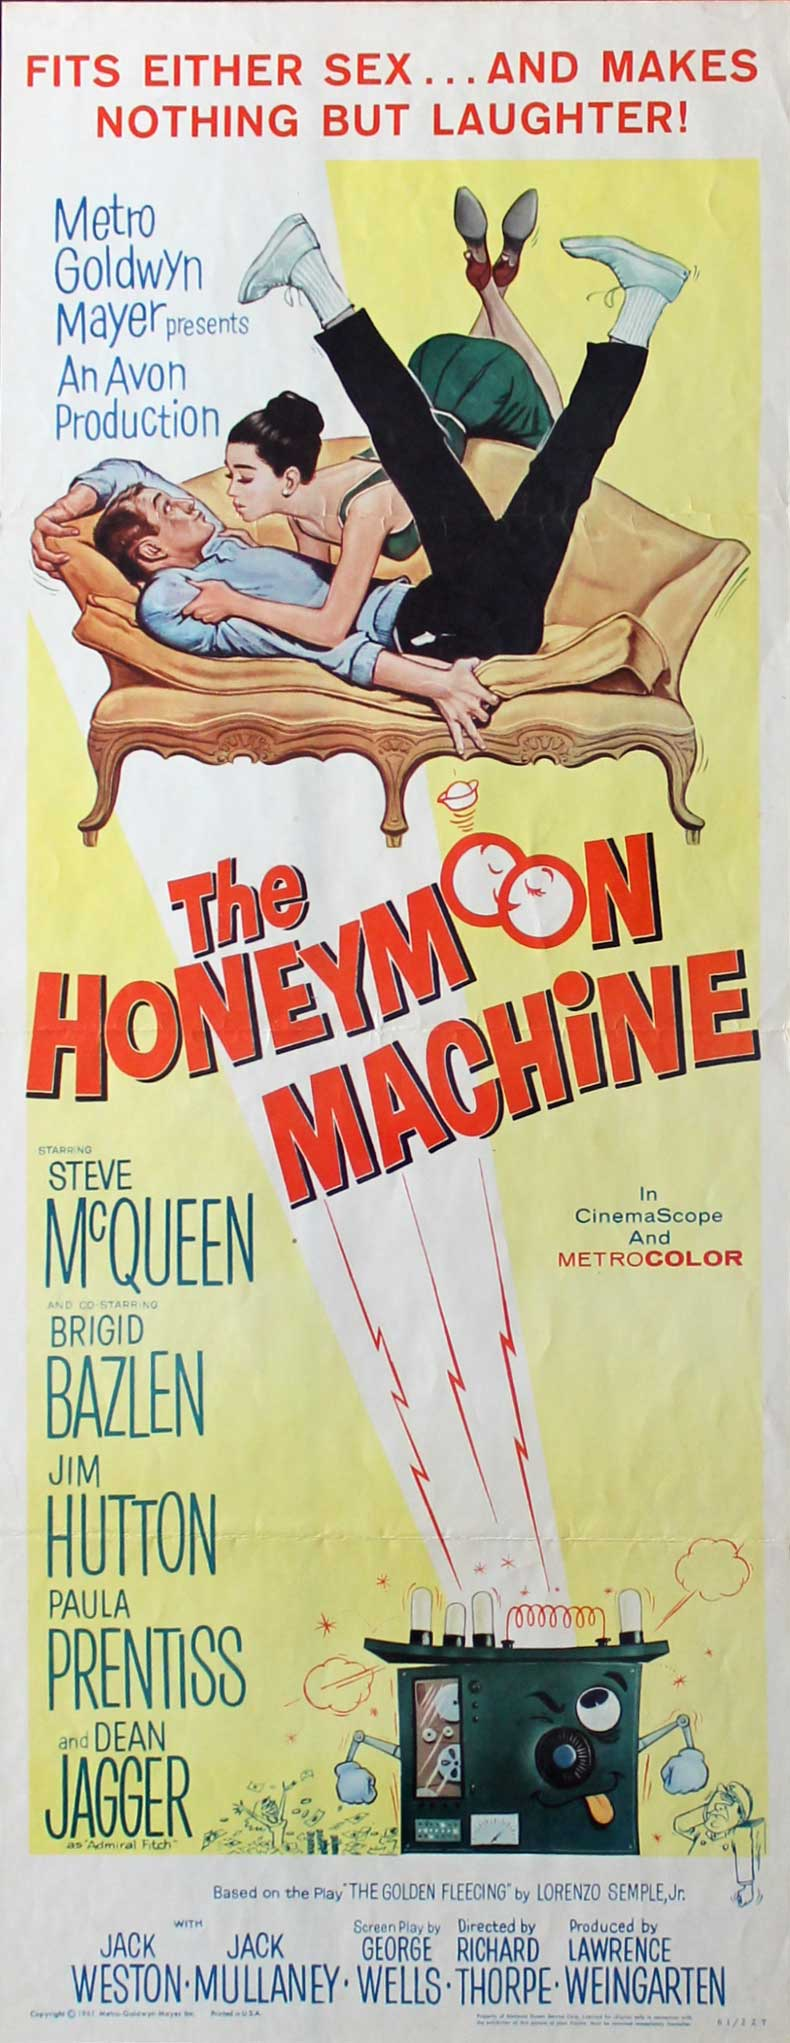 THE HONEYMOON MACHINE, 1961, Steve McQueen, Original Insert (14x36)